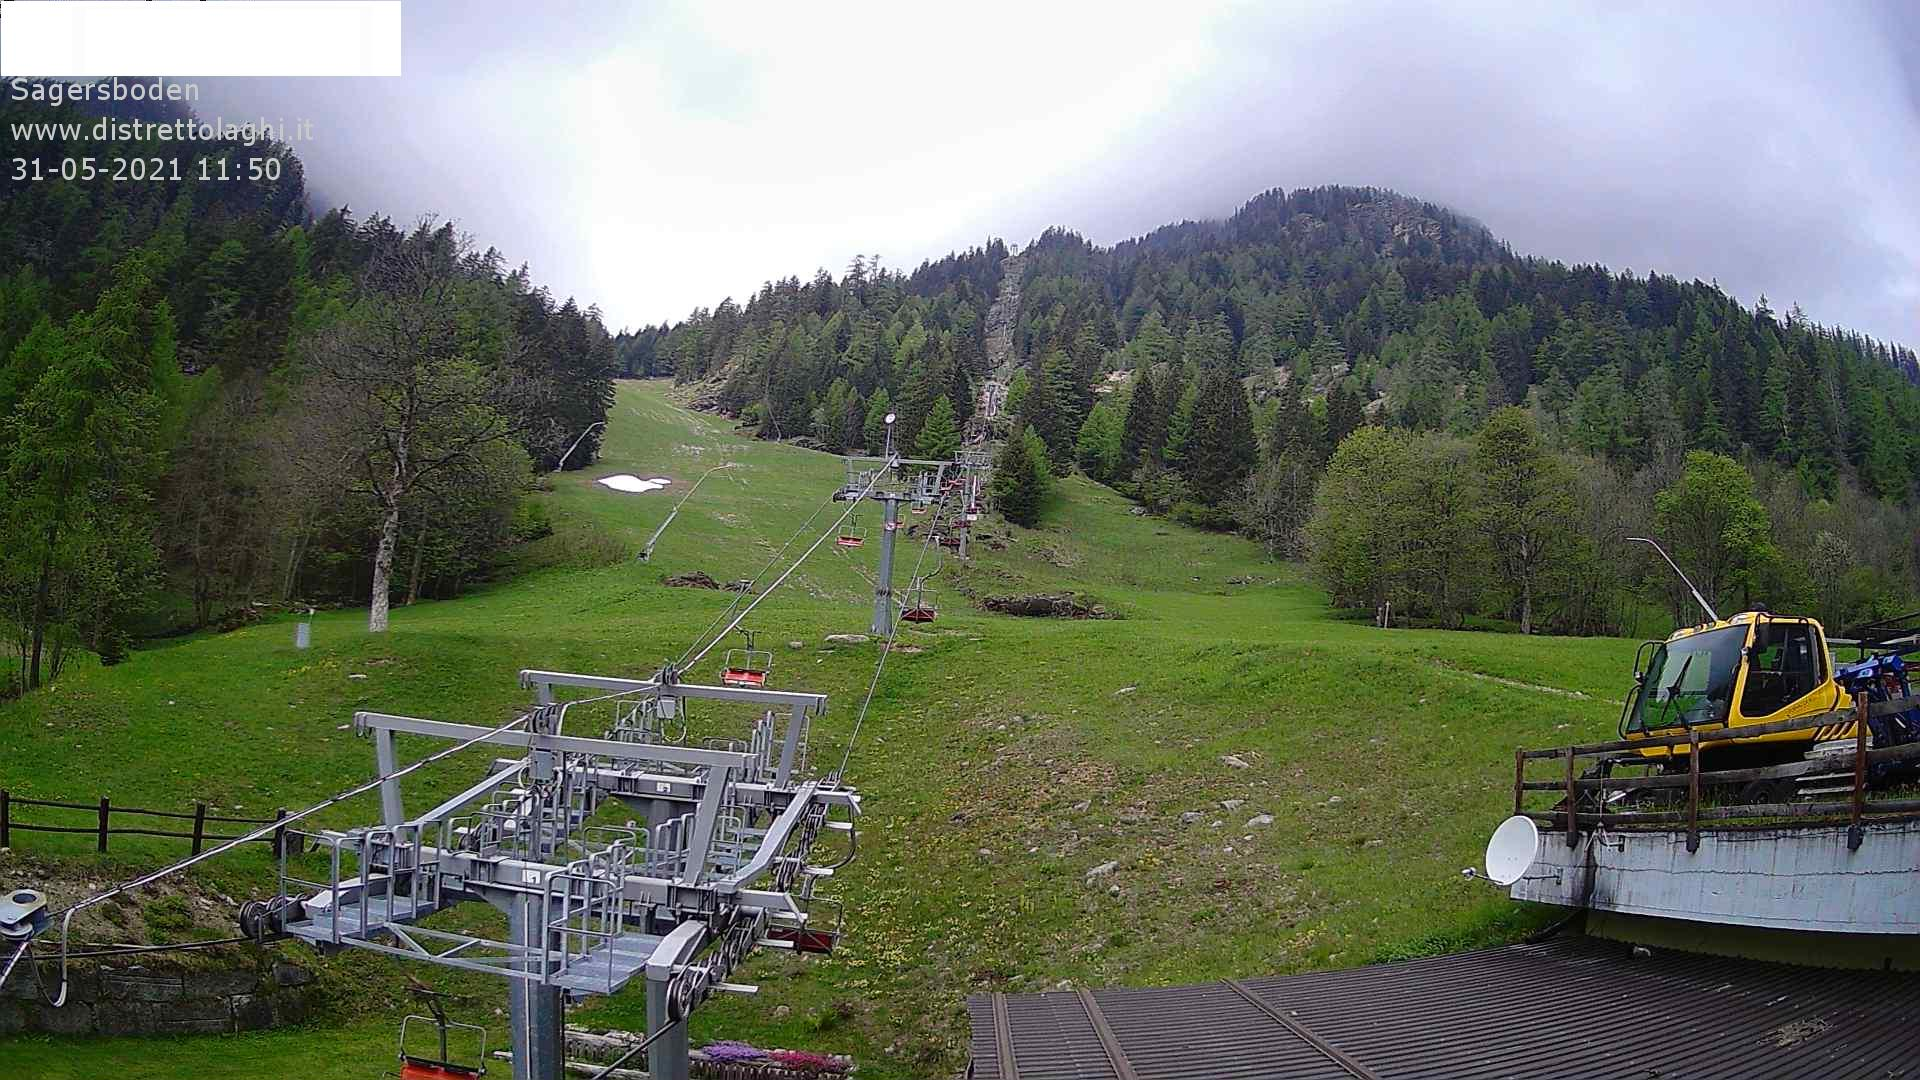 Webcam <br><span> sagersboden</span>